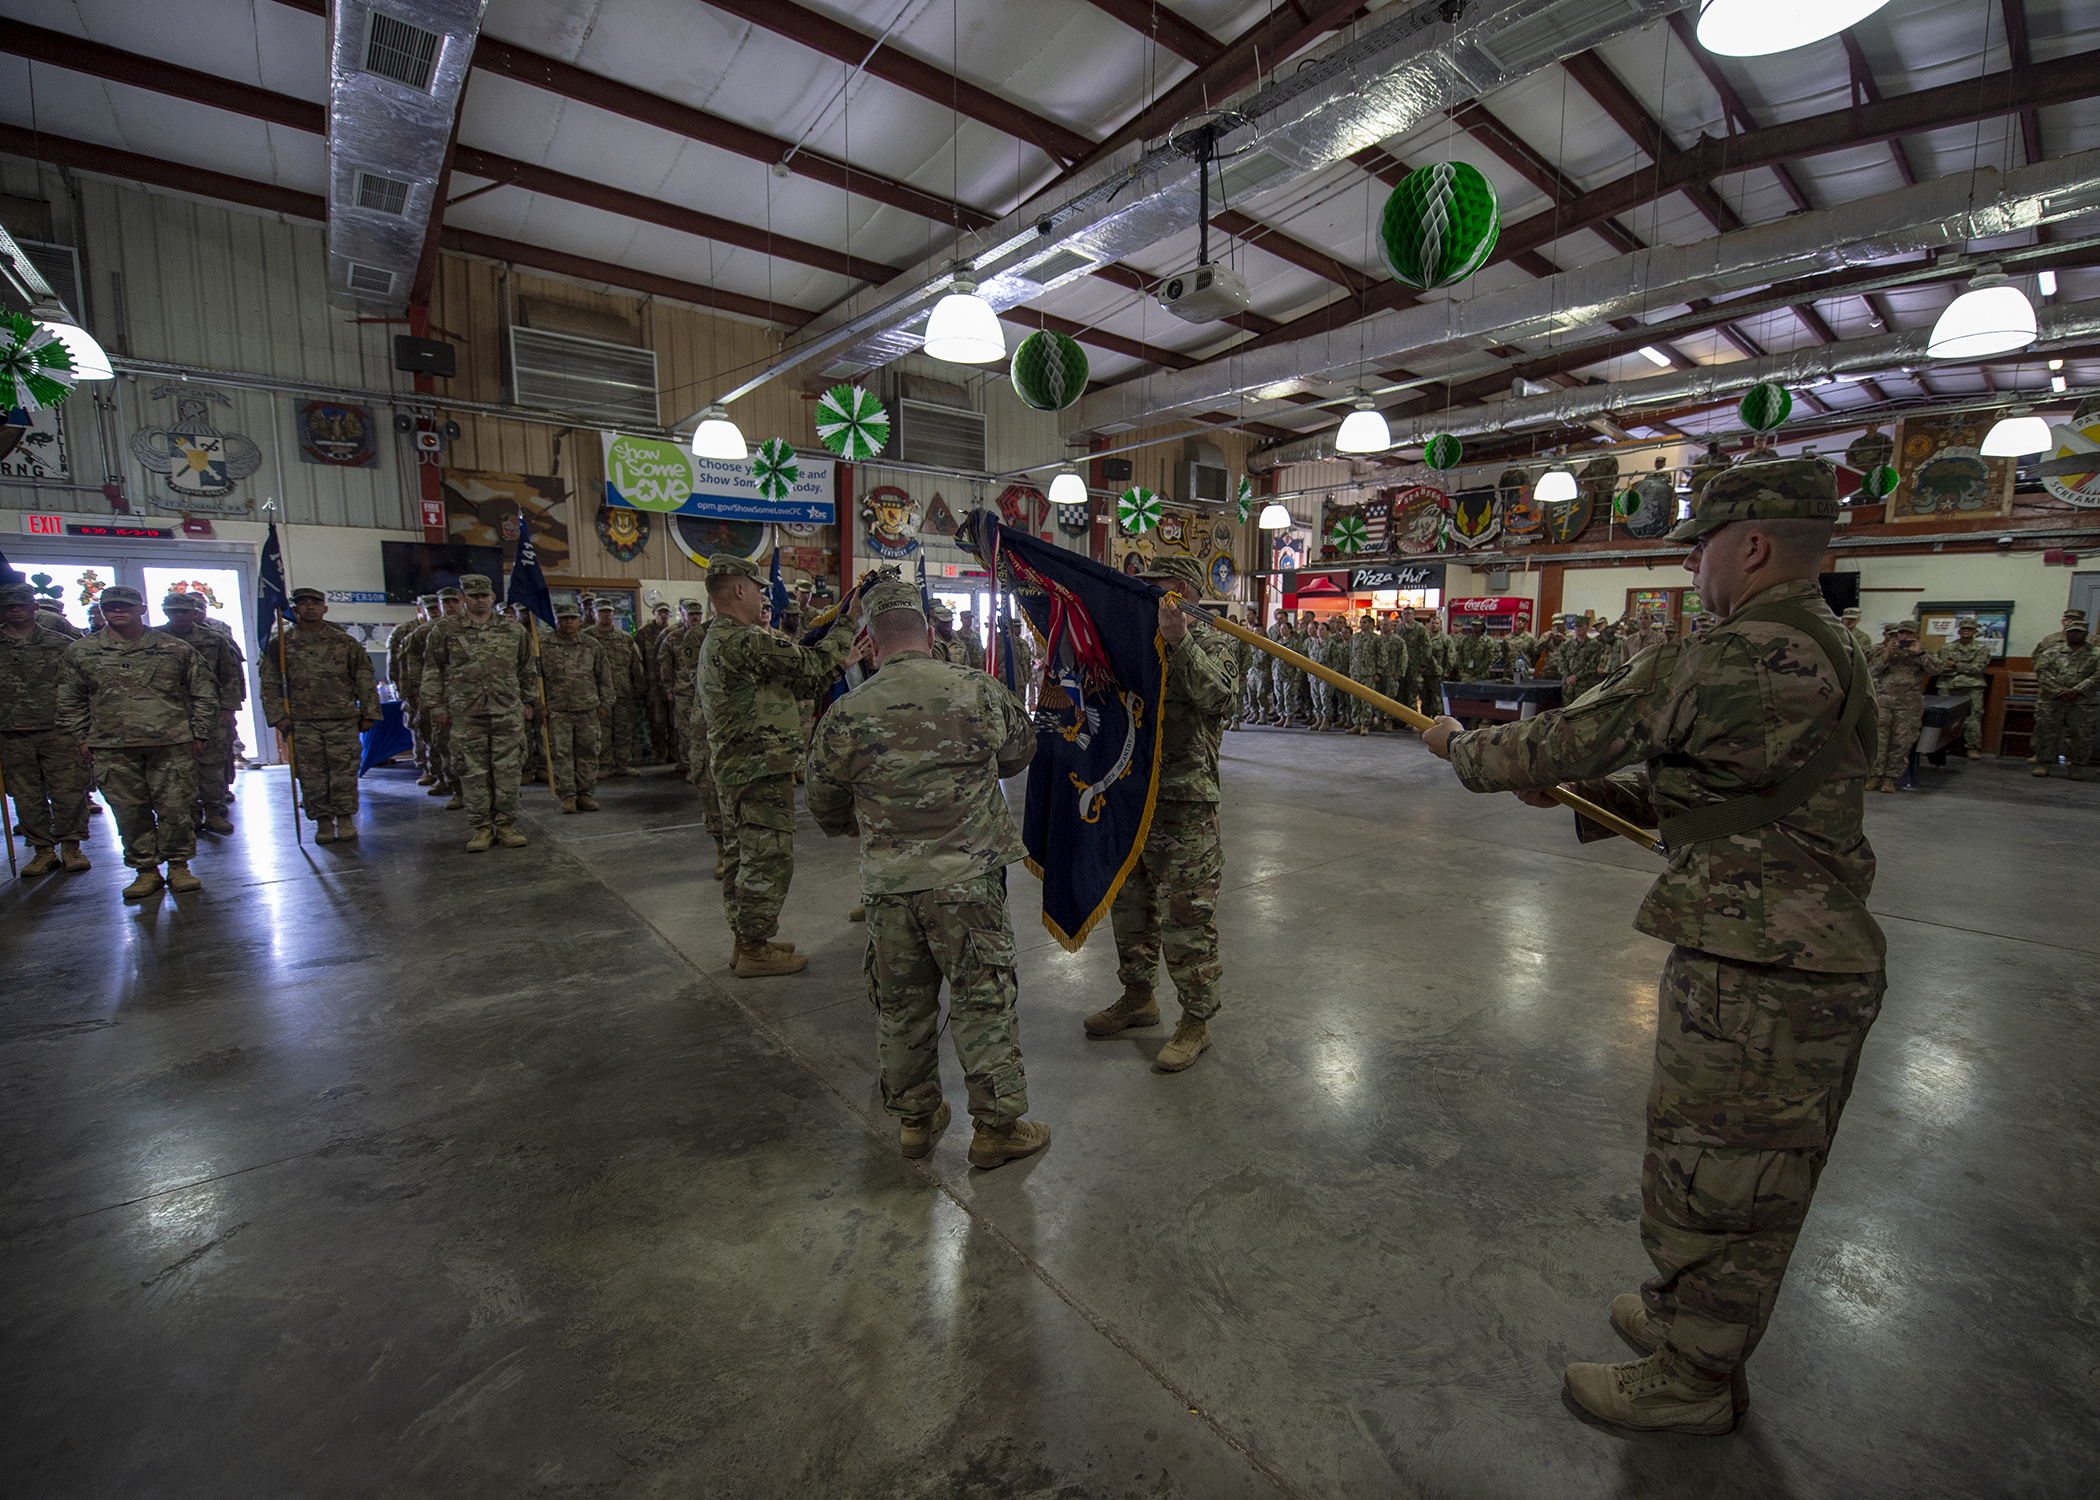 U.S. Army Soldiers from 2nd Battalion, 113th Infantry Regiment, Task Force Warrior, New Jersey National Guard, assume responsibility of their mission at Combined Joint Task Force-Horn of Africa (CJTF-HOA) from 1st Battalion, 141st Infantry Regiment, Task Force Alamo, Texas National Guard during a transfer of authority ceremony at Camp Lemonnier, Djibouti, March 15, 2019. Task Force Warrior assumed responsibility as the security forces battalion for CJTF-HOA and will also contribute to international efforts to enhance security and stability in East Africa. (U.S. Air Force Photo by Tech. Sgt. Shawn Nickel)